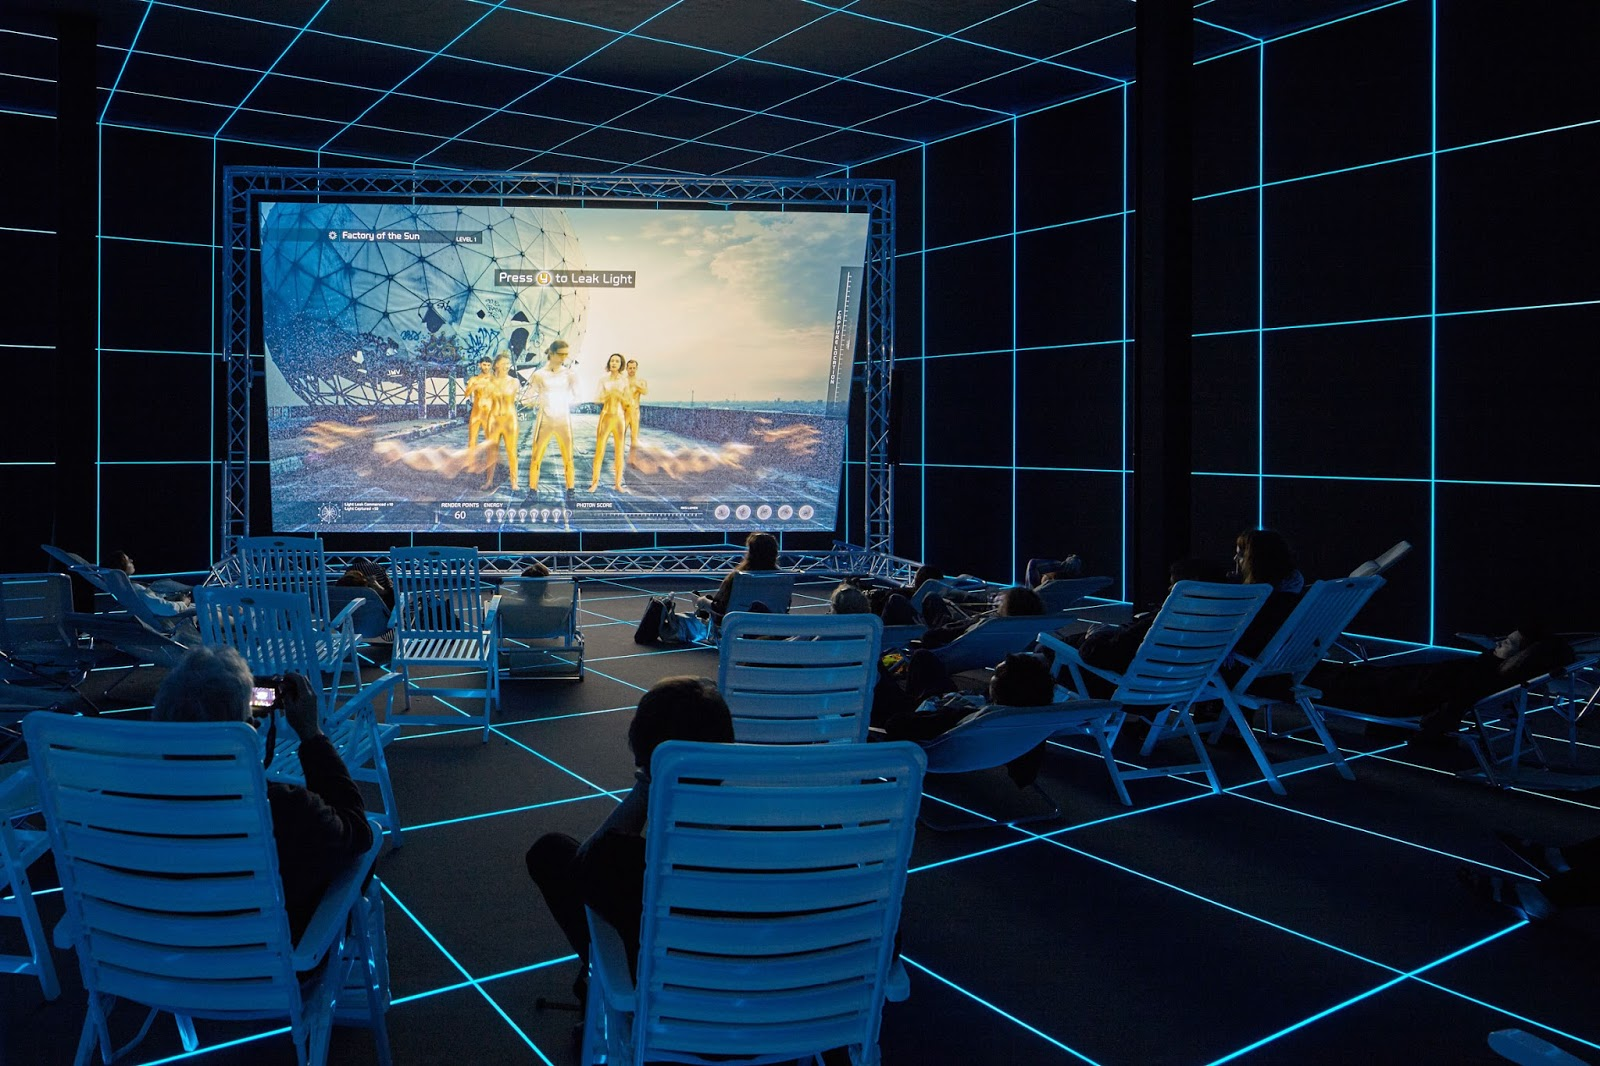 Hito Steyerl (b. 1966), Installation view of Factory of the Sun, 2015 (German Pavilion, 56th Venice Biennale, 2015). Video, color, sound; 21 min., looped; with environment, dimensions variable. Collection of the artist; courtesy Andrew Kreps Gallery, New York. Photograph by Manuel Reinartz; image courtesy the artist and Andrew Kreps Gallery, New York